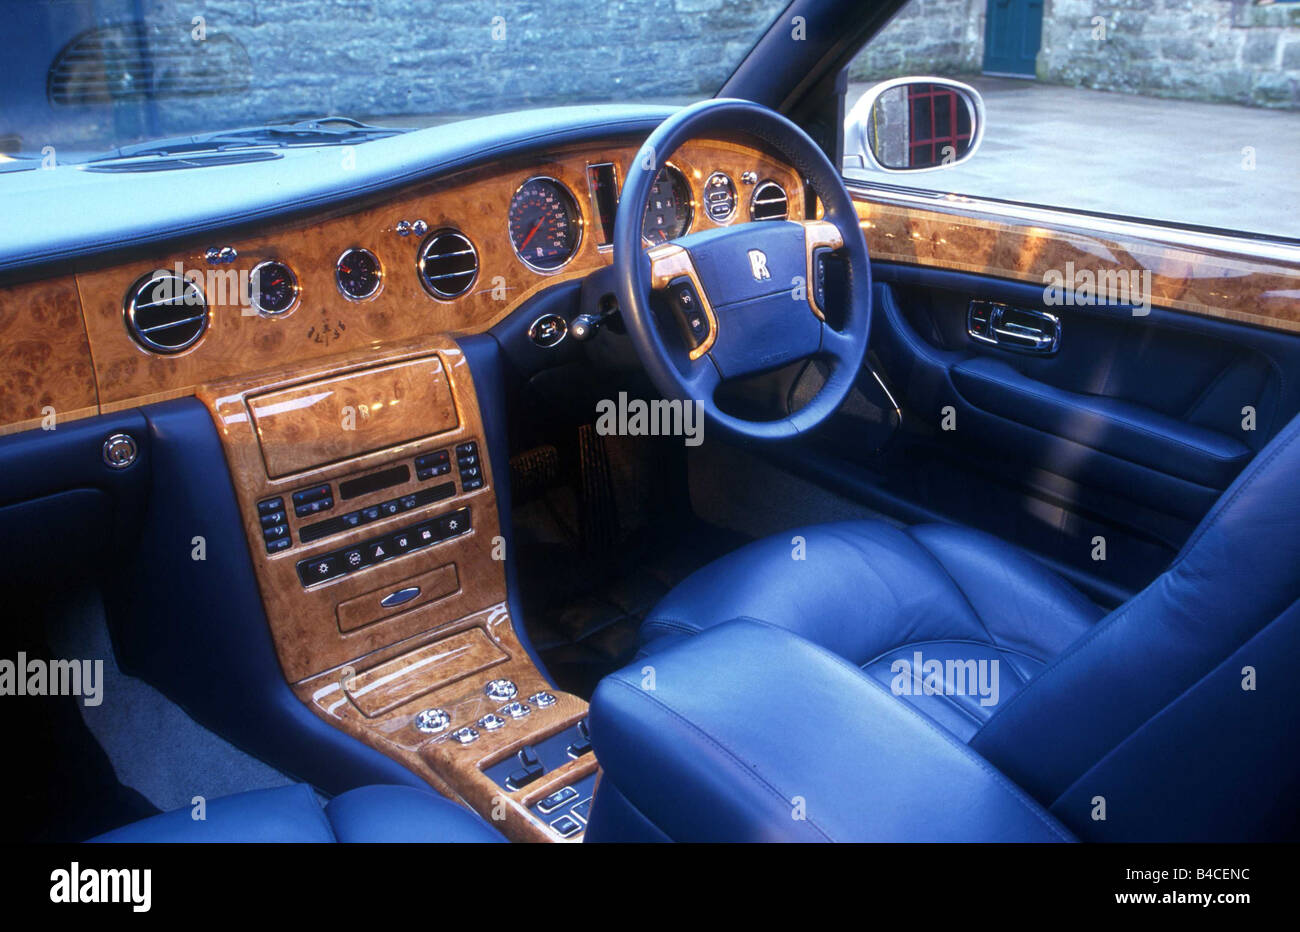 Rolls Royce Interior High Resolution Stock Photography And Images Alamy